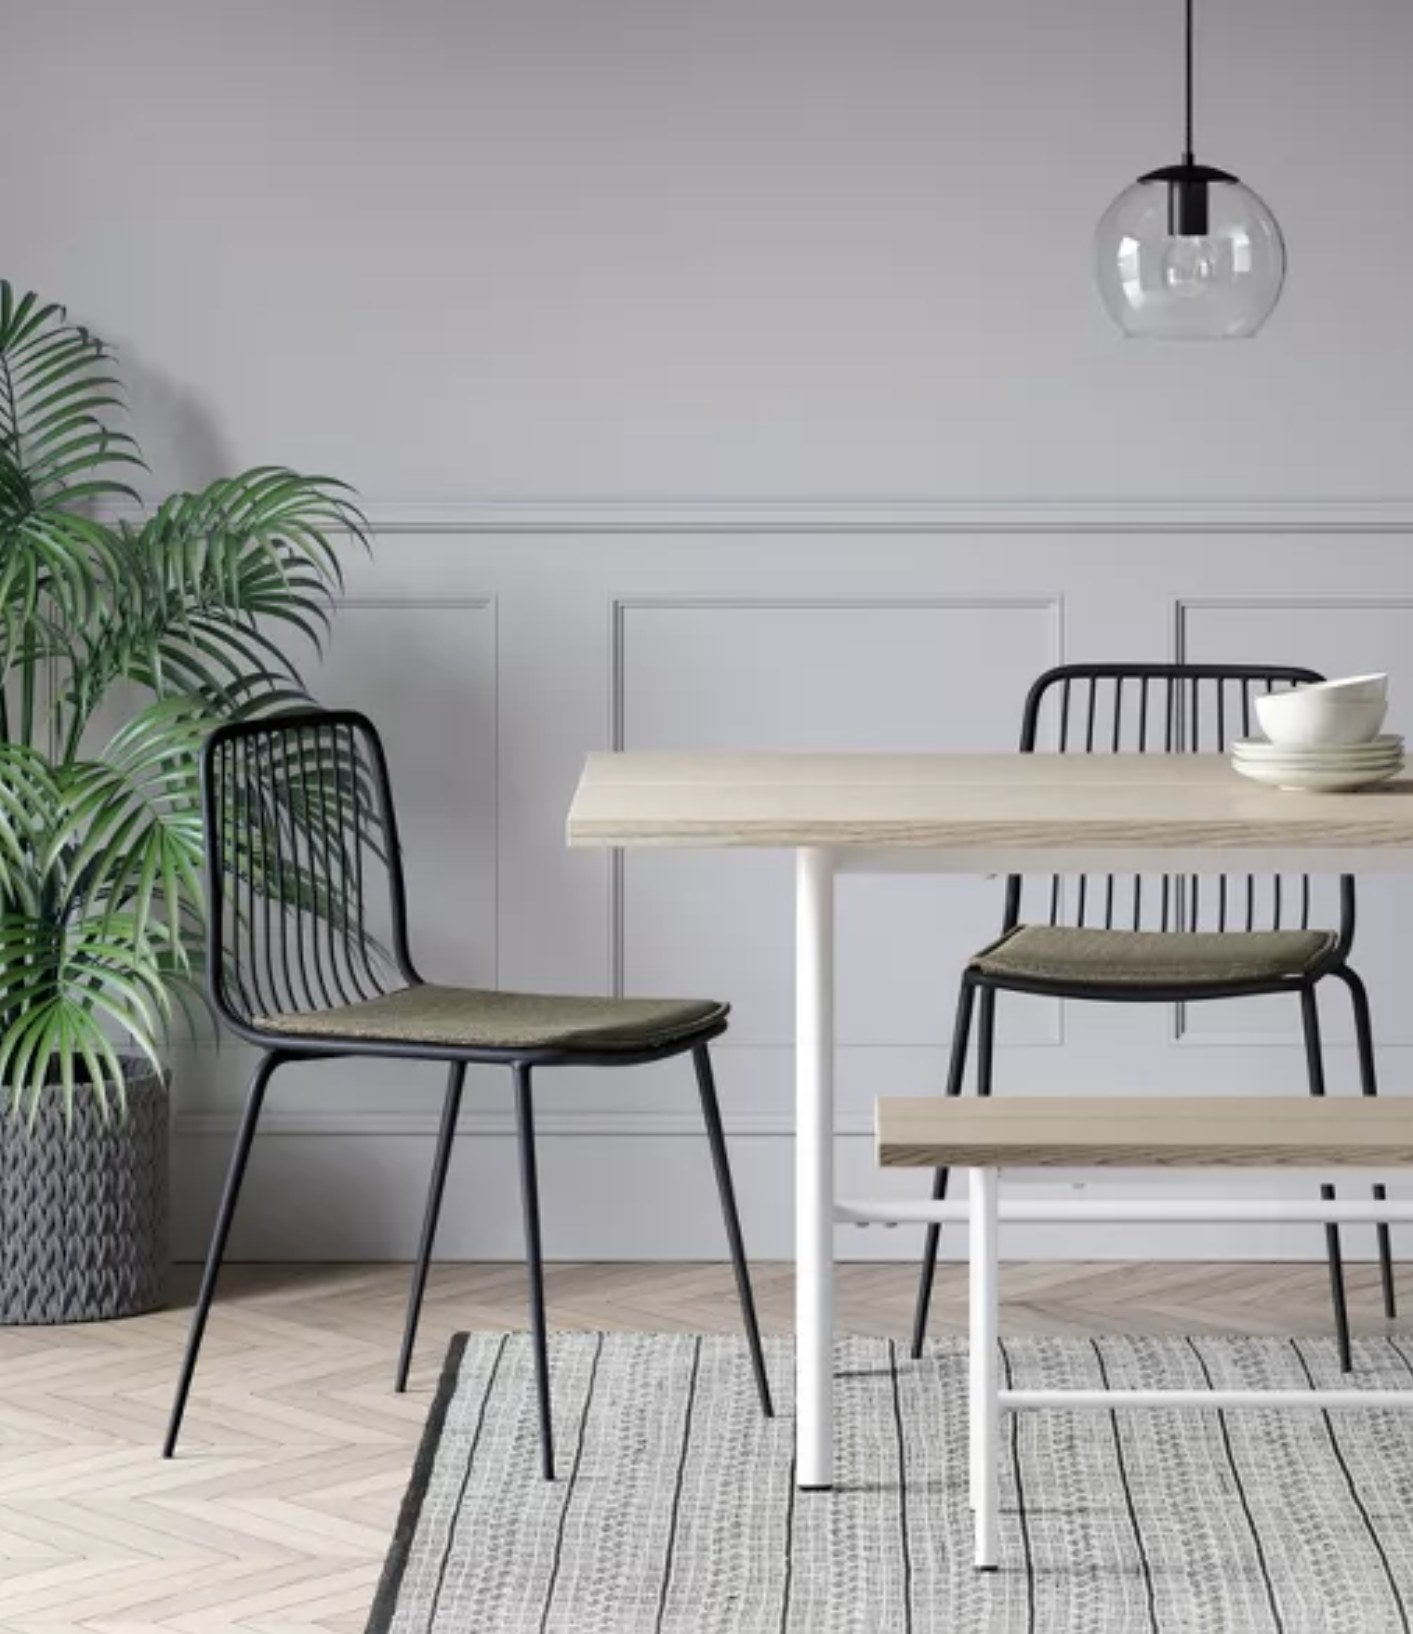 The chairs in a dining room